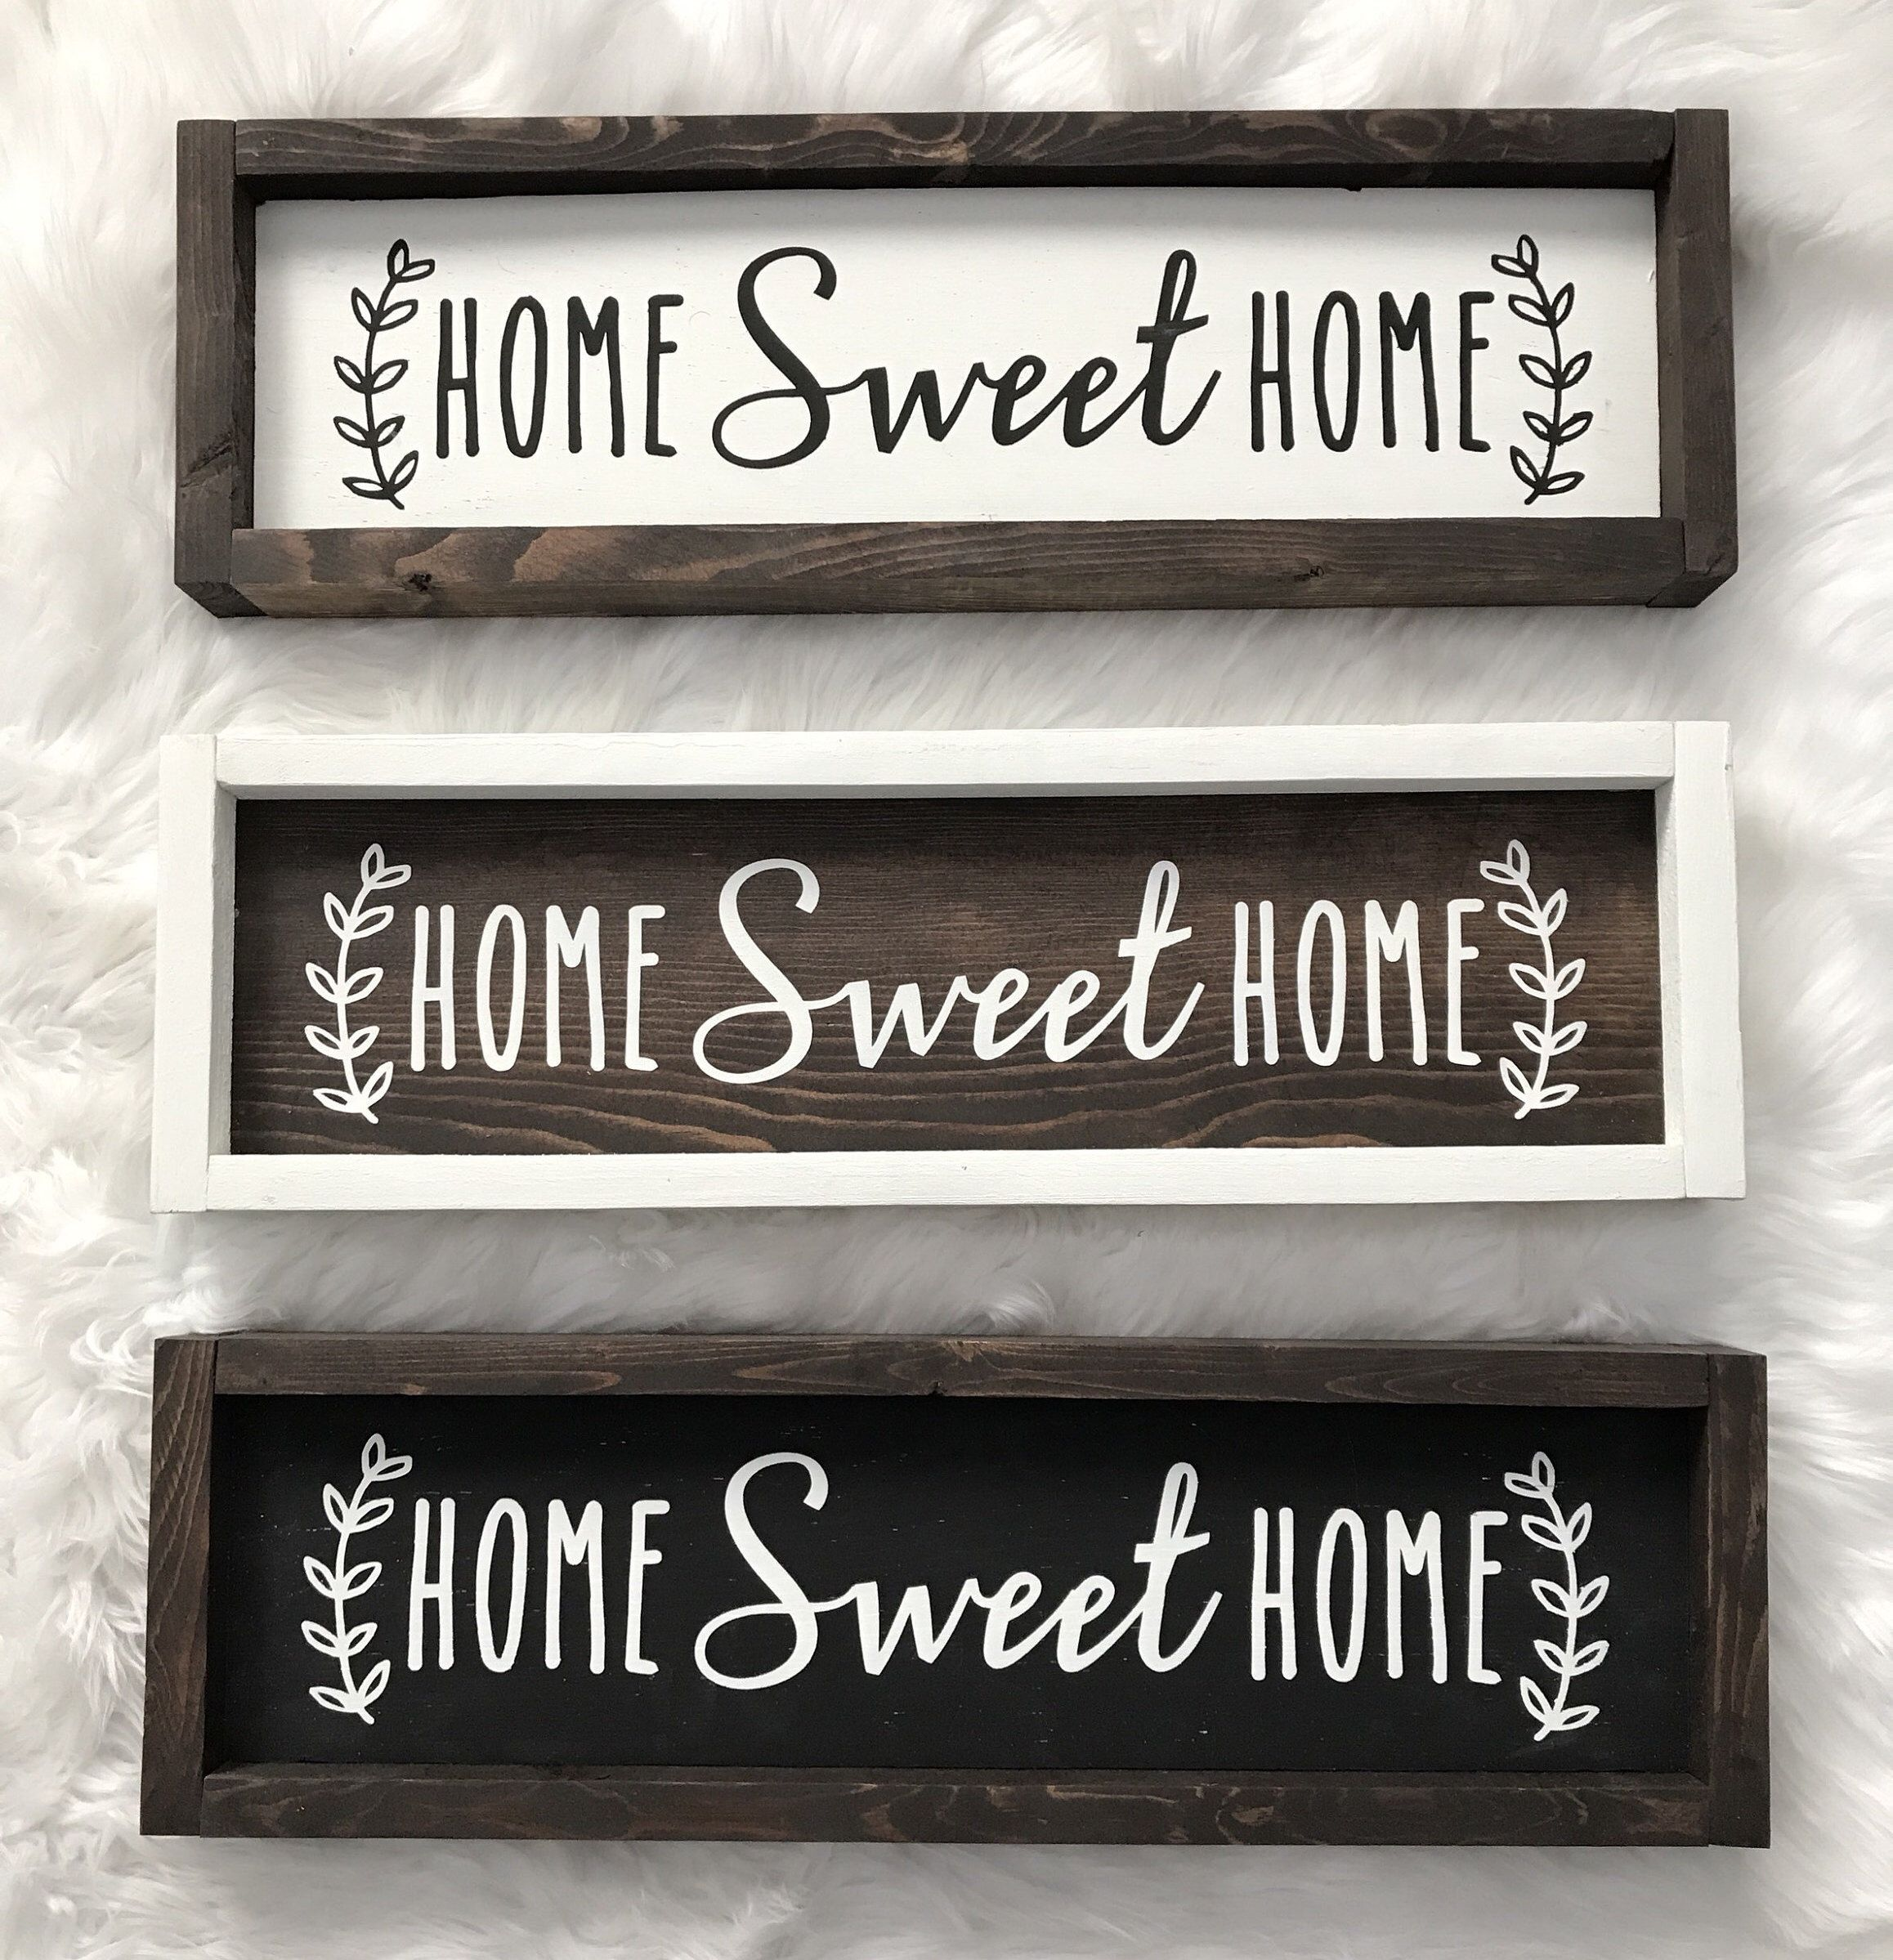 Wooden Signs Home Decor: Pin By Danielles Gala On Signs